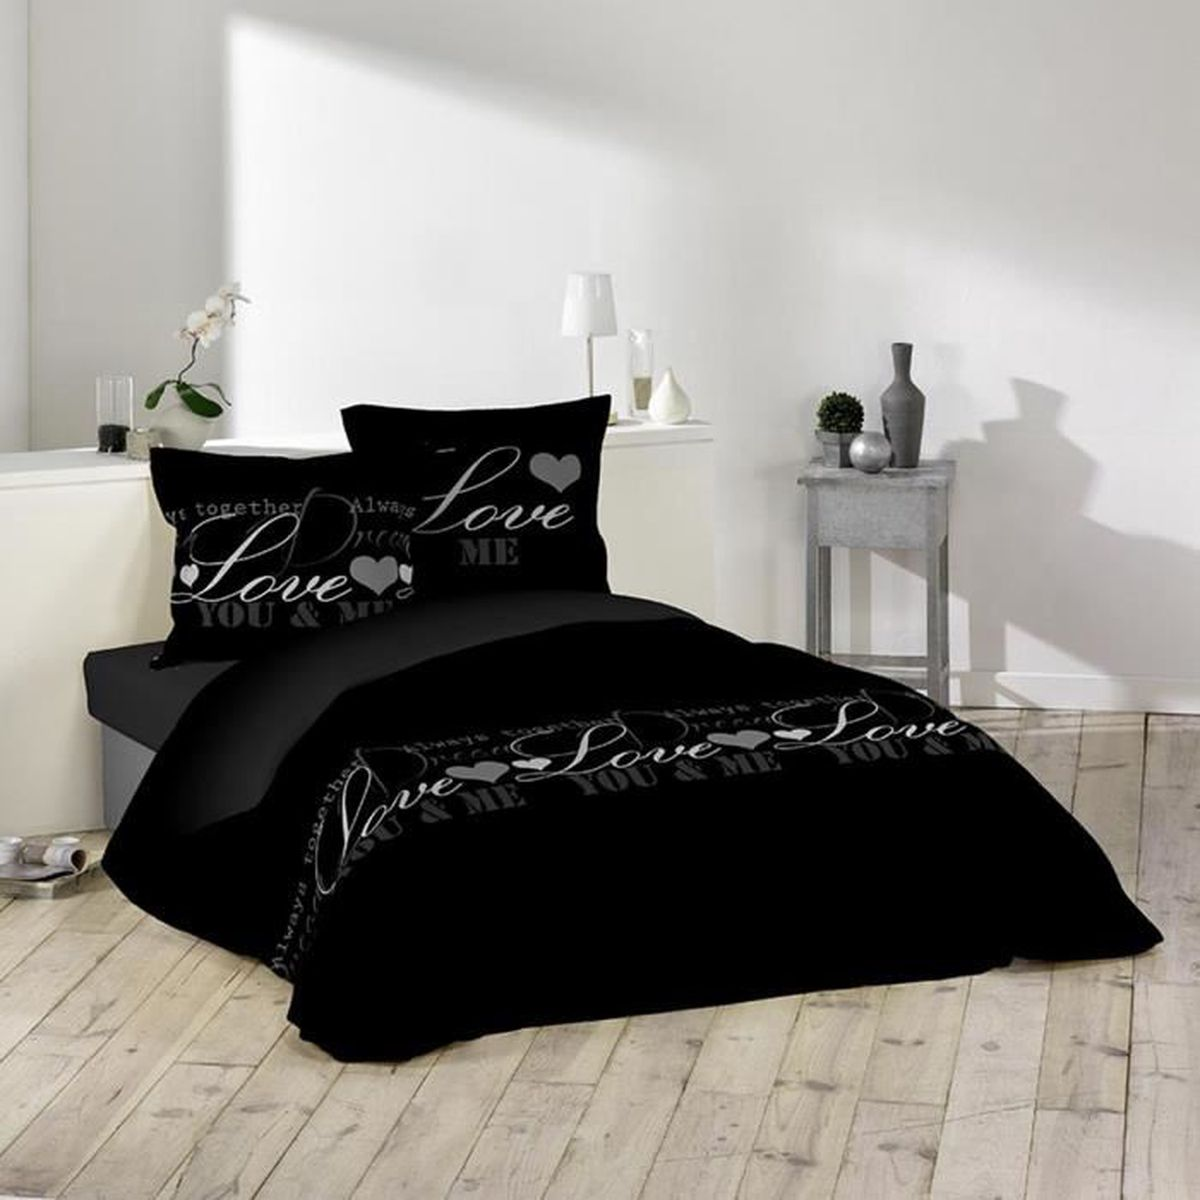 couette 220x240 pas cher housse de couette pas cher. Black Bedroom Furniture Sets. Home Design Ideas